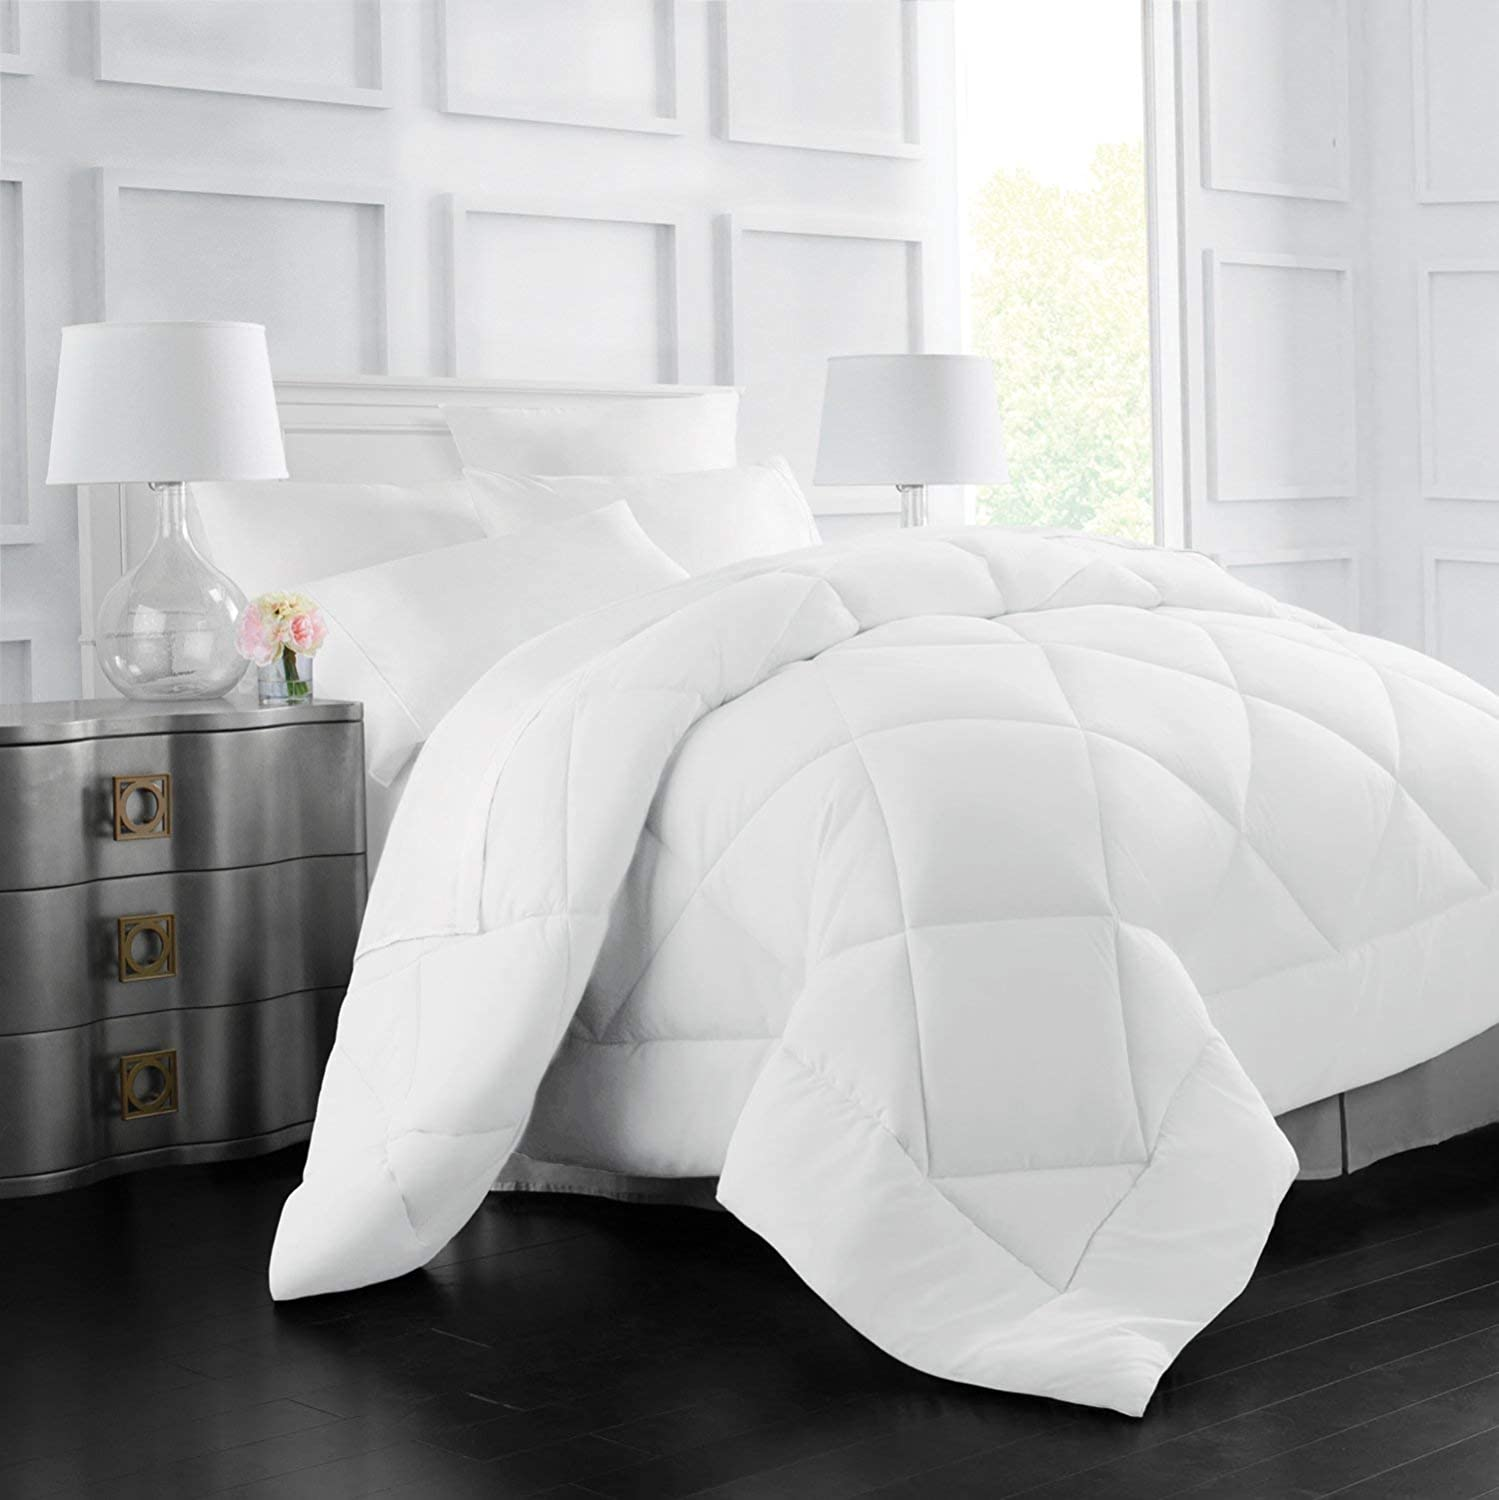 Italian Luxury Goose Down Alternative Comforter - All Season - 2100 Series Hotel Collection - Luxury Hypoallergenic Comforter - Twin,Twin XL - White